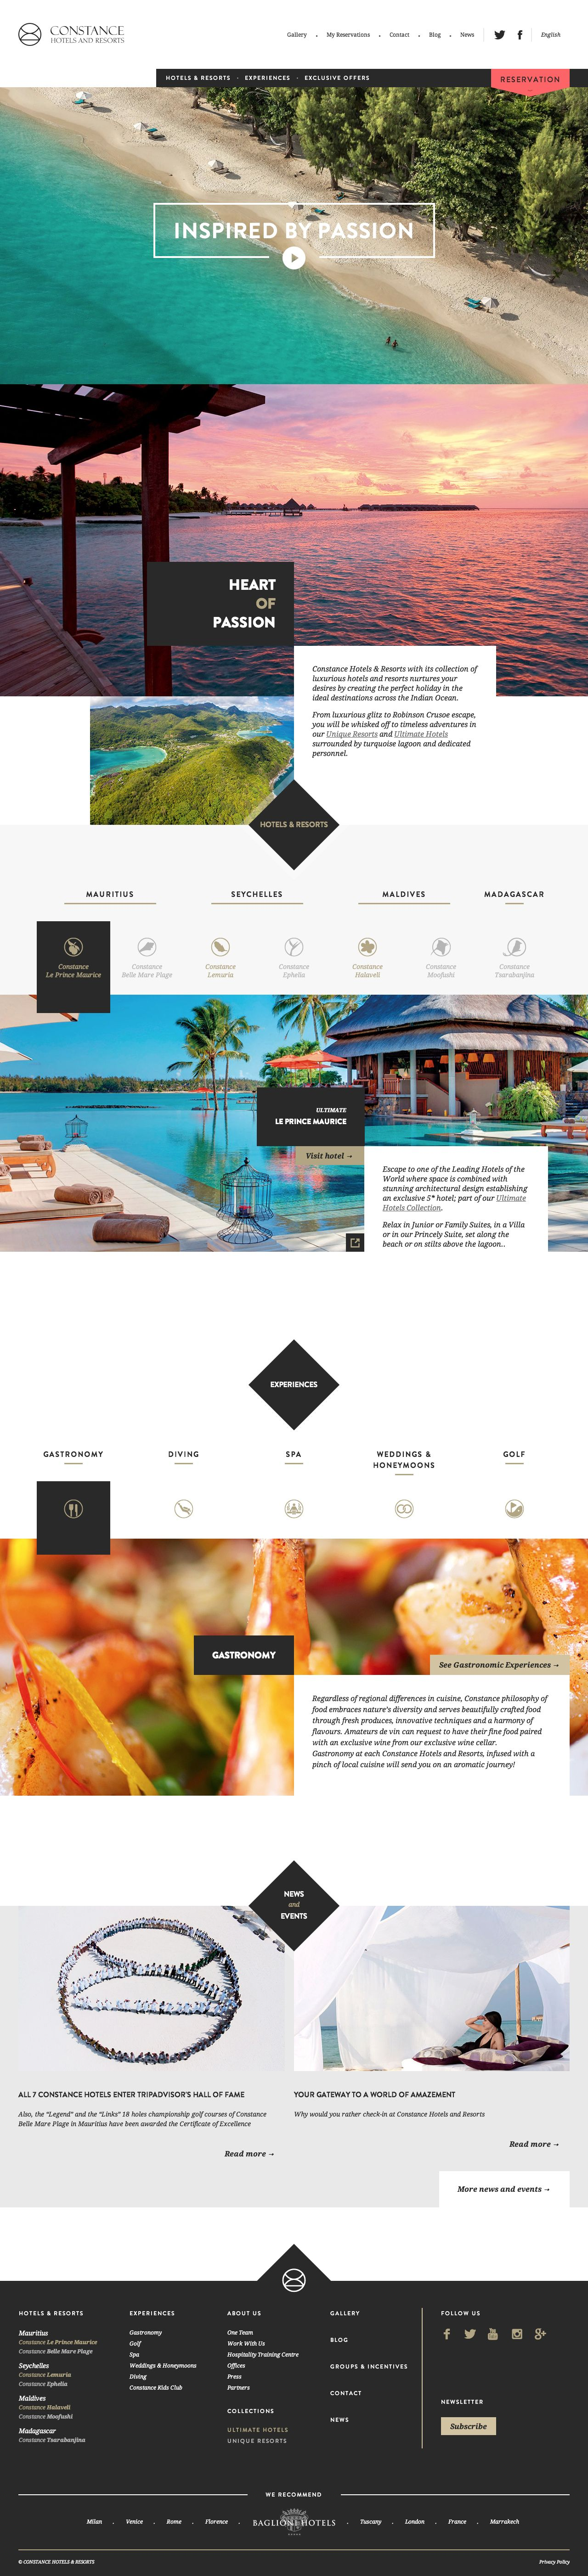 Are These The Best 12 Hotel Website Designs In 2015 Hotel Website Design Web Development Design Website Design